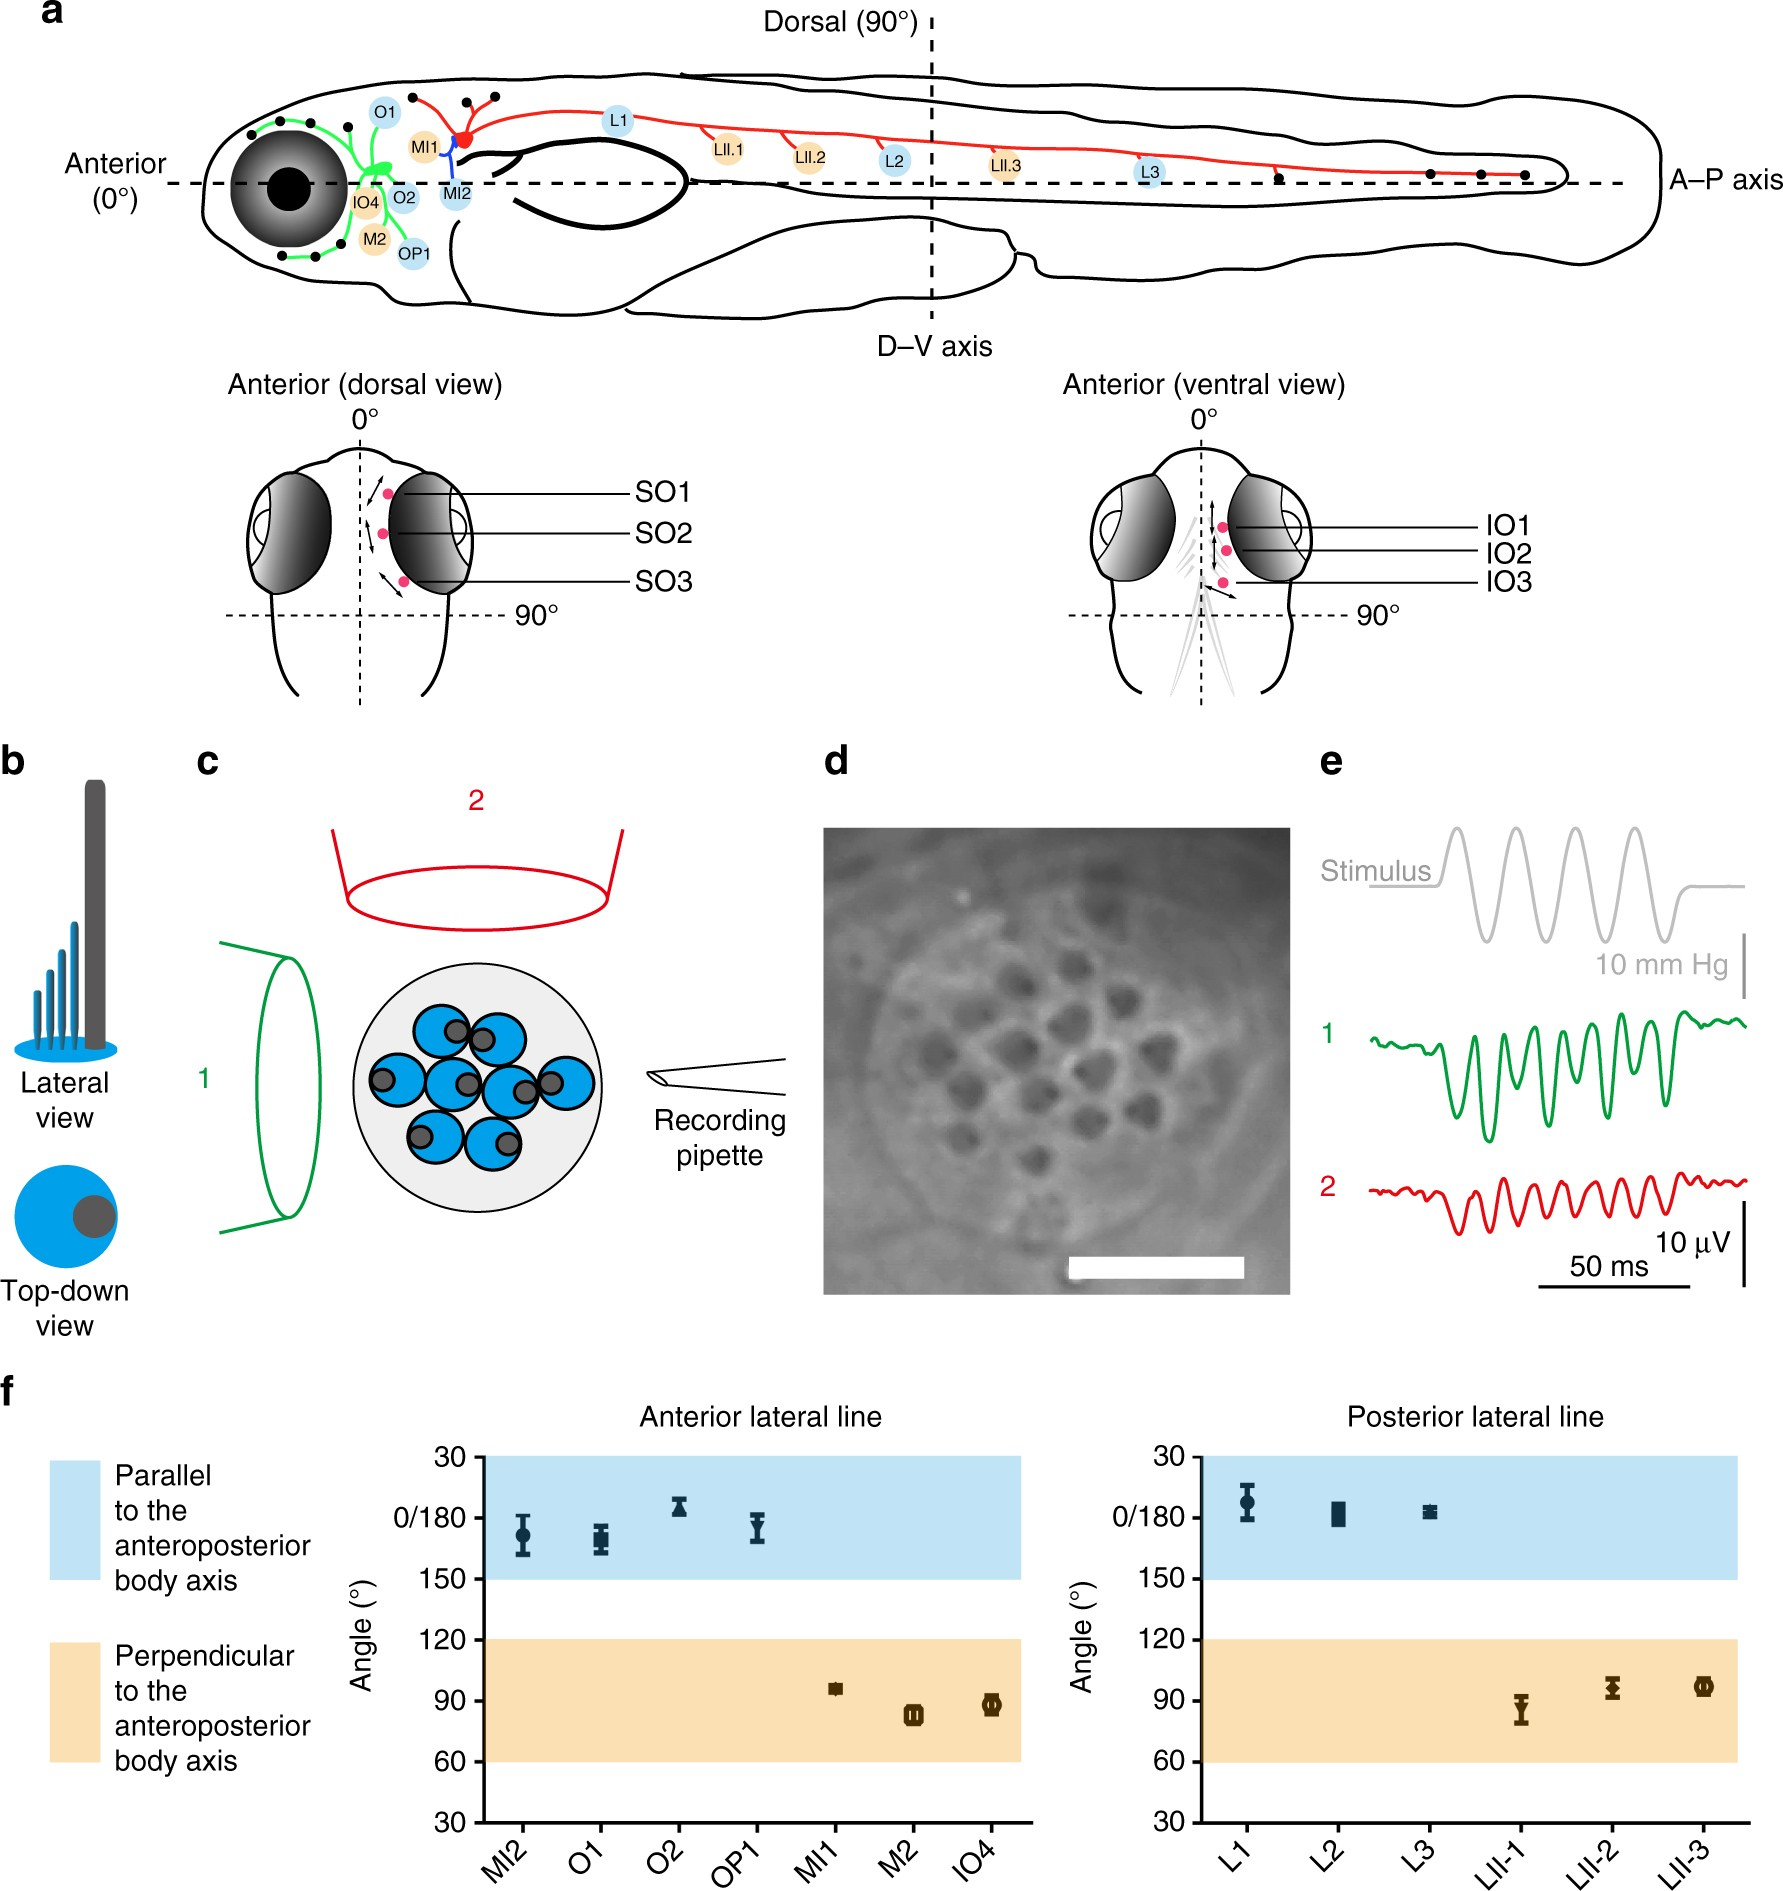 A Molecular Basis For Water Motion Detection By The Mechanosensory Live Line Detector Indicator Circuit Schematic Lateral Of Zebrafish Nature Communications